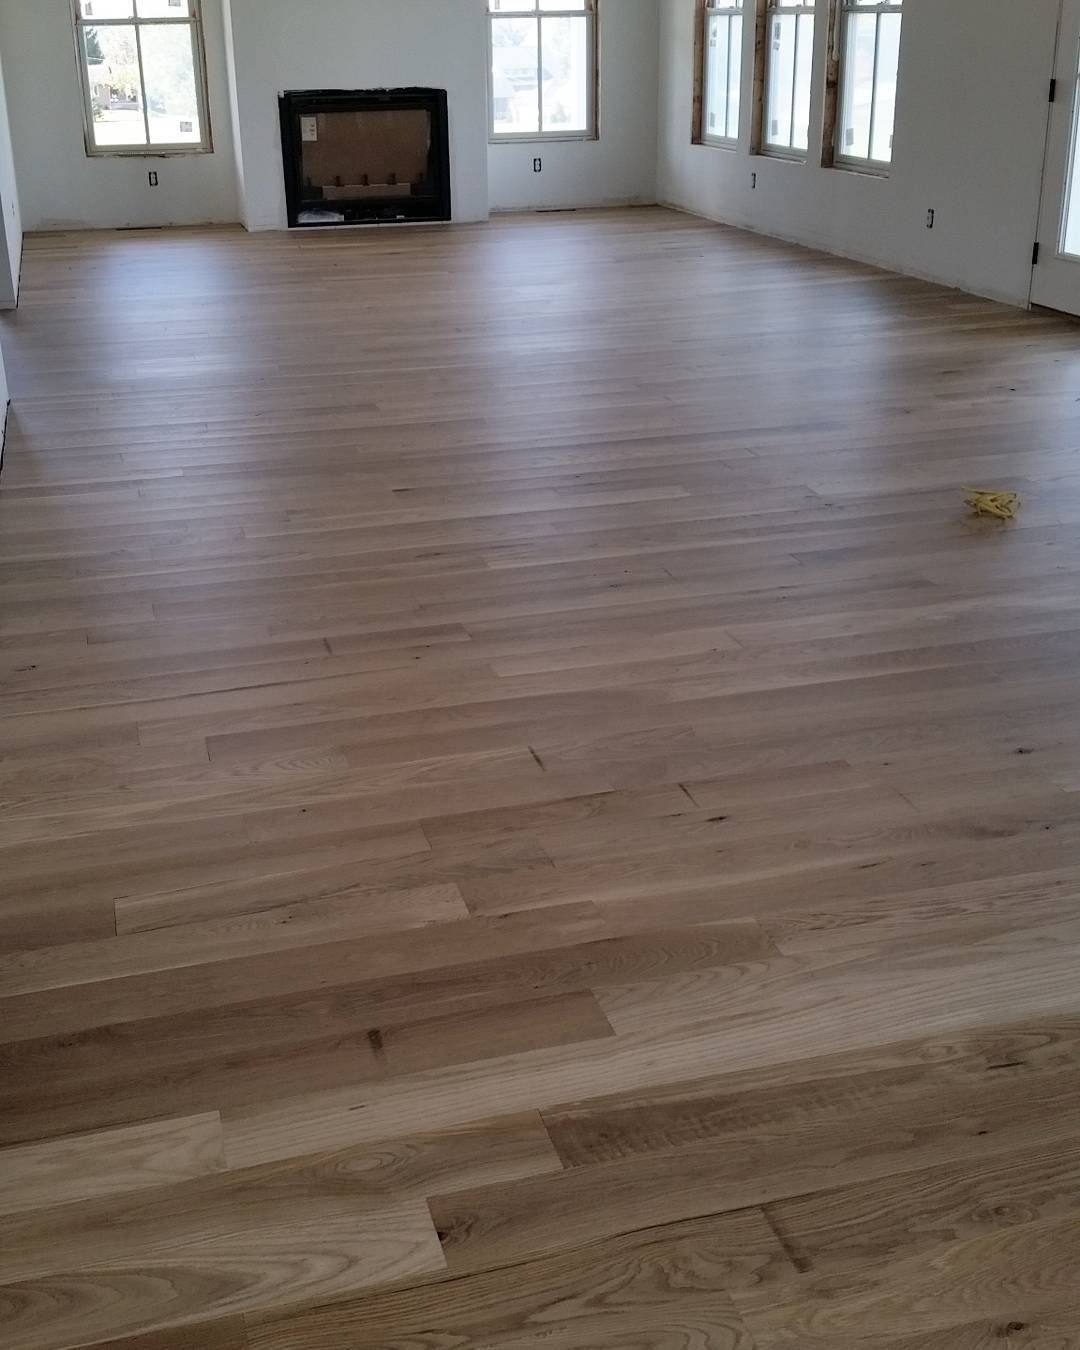 Delicieux White Oak Floors, Sanded, Sealed, Sanded 3x, Matte Top Coat Bona Finish